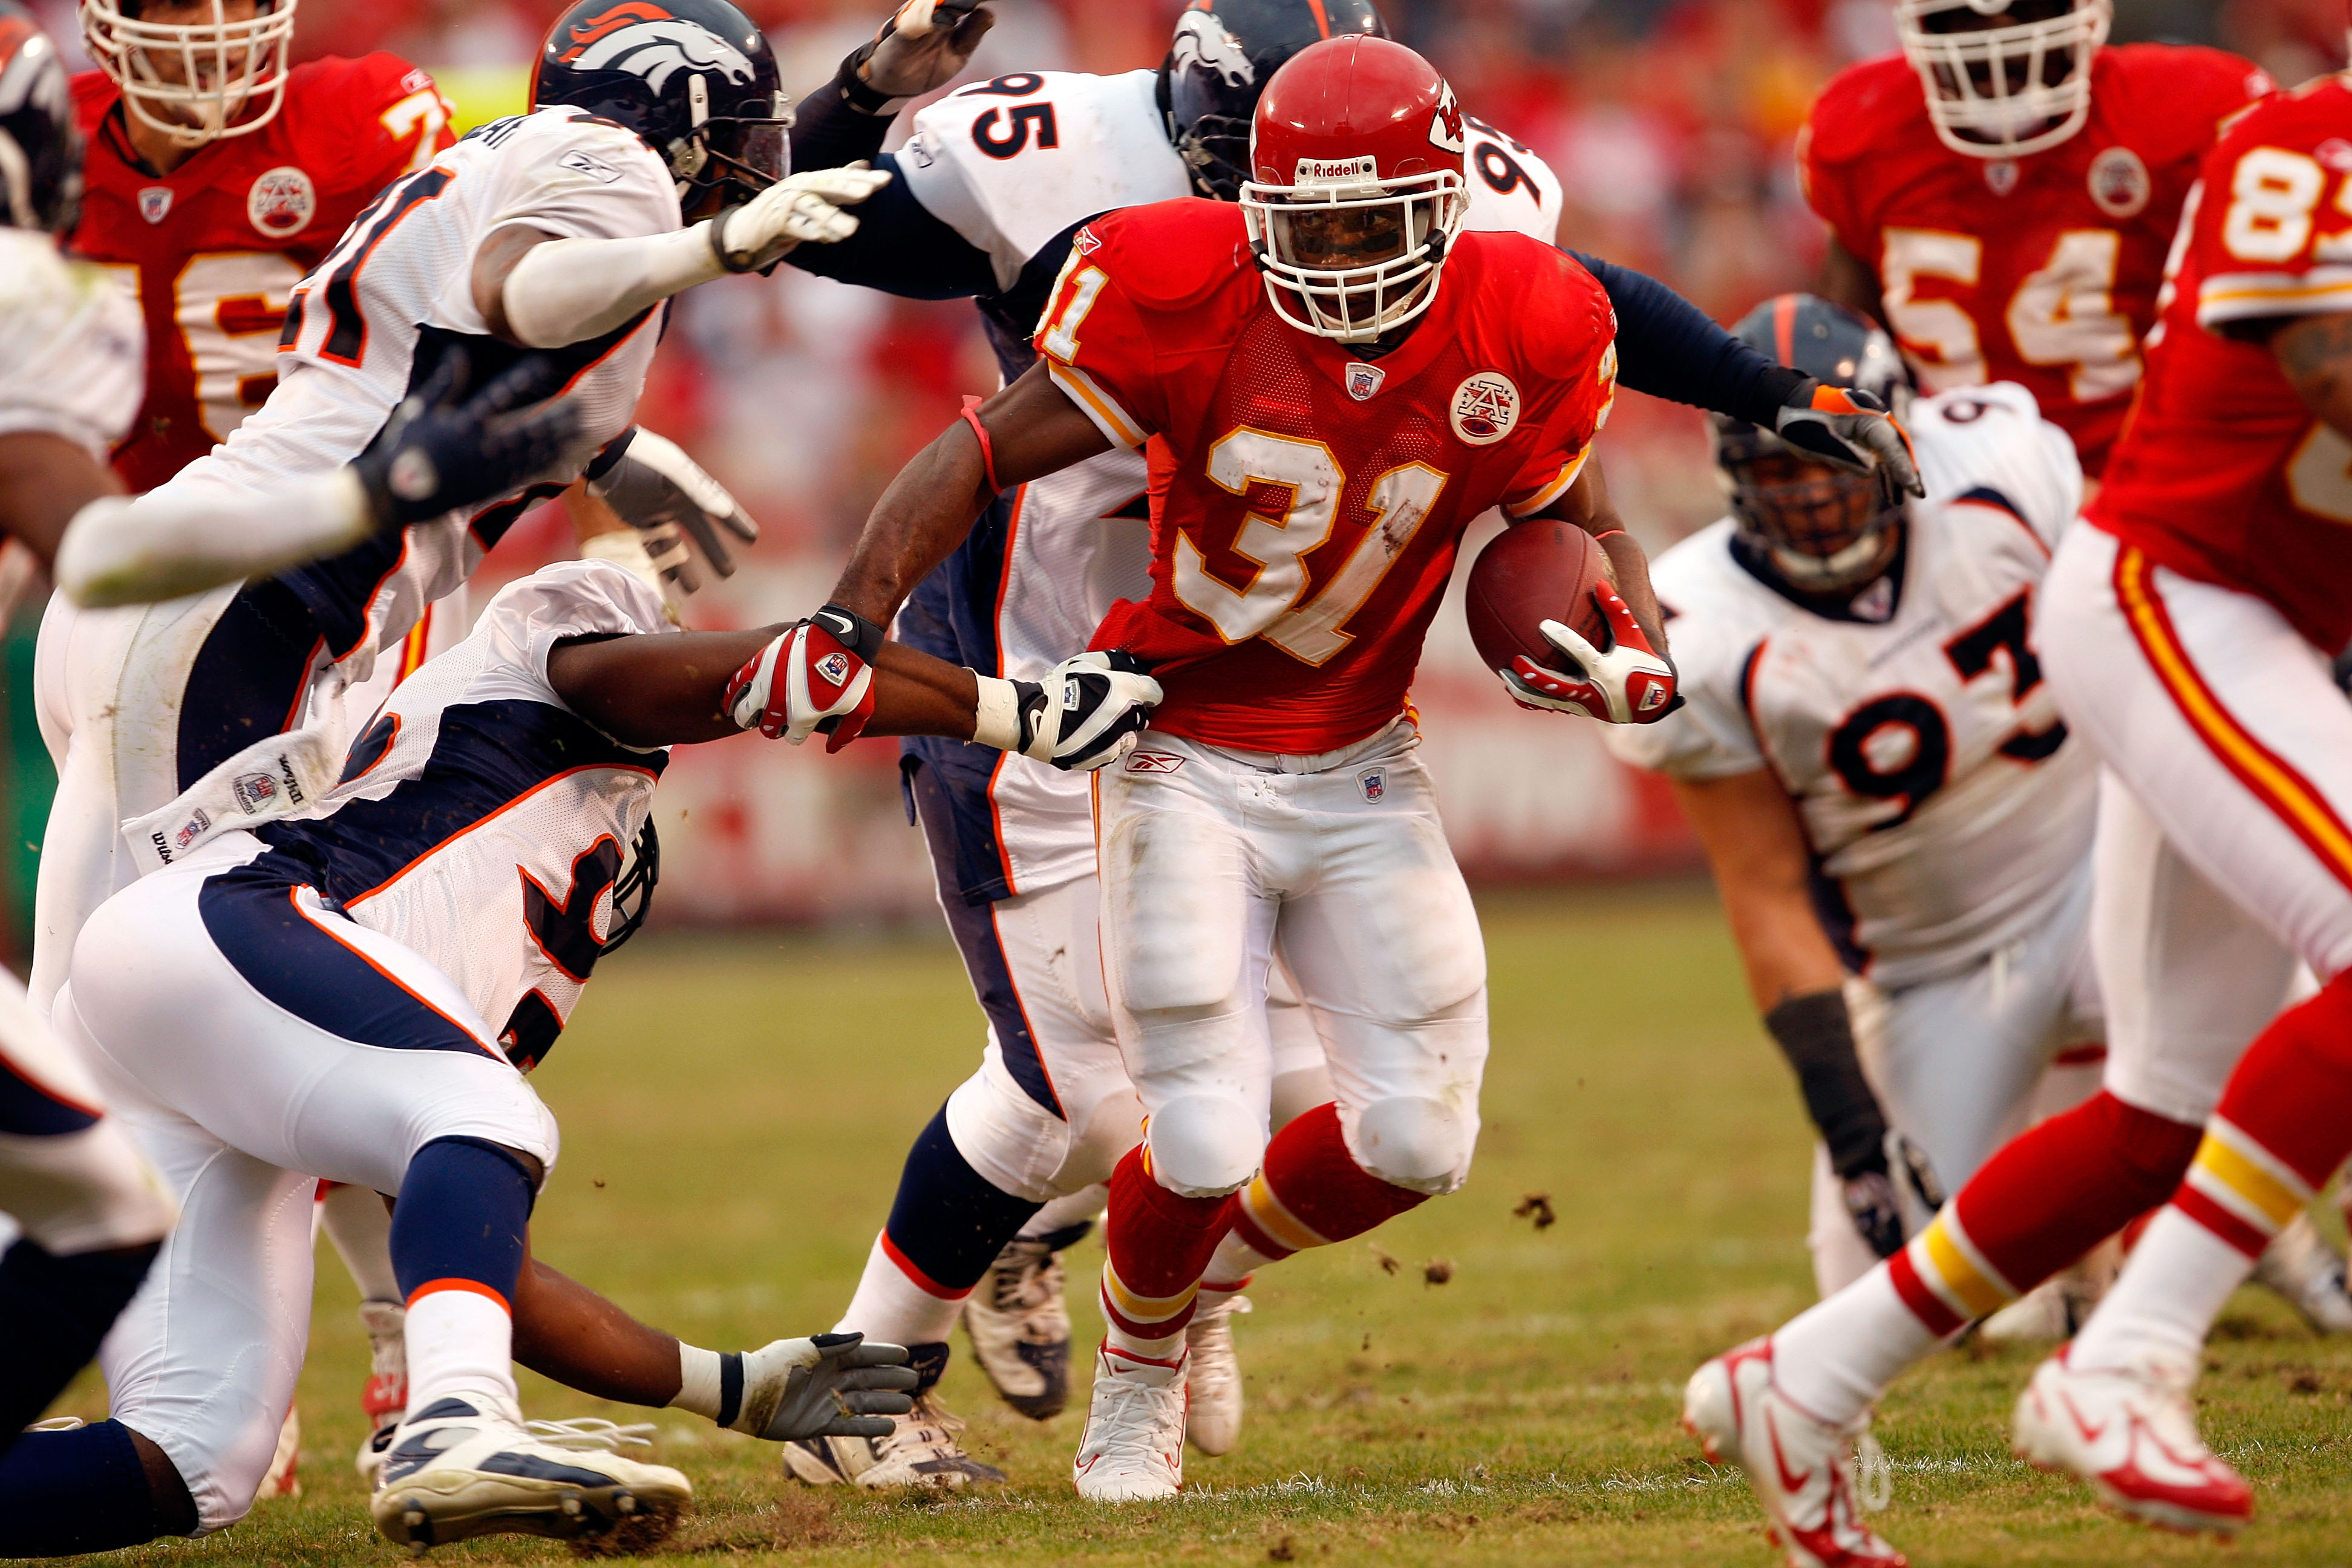 KANSAS CITY, MO - NOVEMBER 11:  Priest Holmes #31 of the Kansas City Chiefs carries the ball during the second half of the game against the Denver Broncos on November 11, 2007 at Arrowhead Stadium in Kansas City, Missouri.  (Photo by Jamie Squire/Getty Im